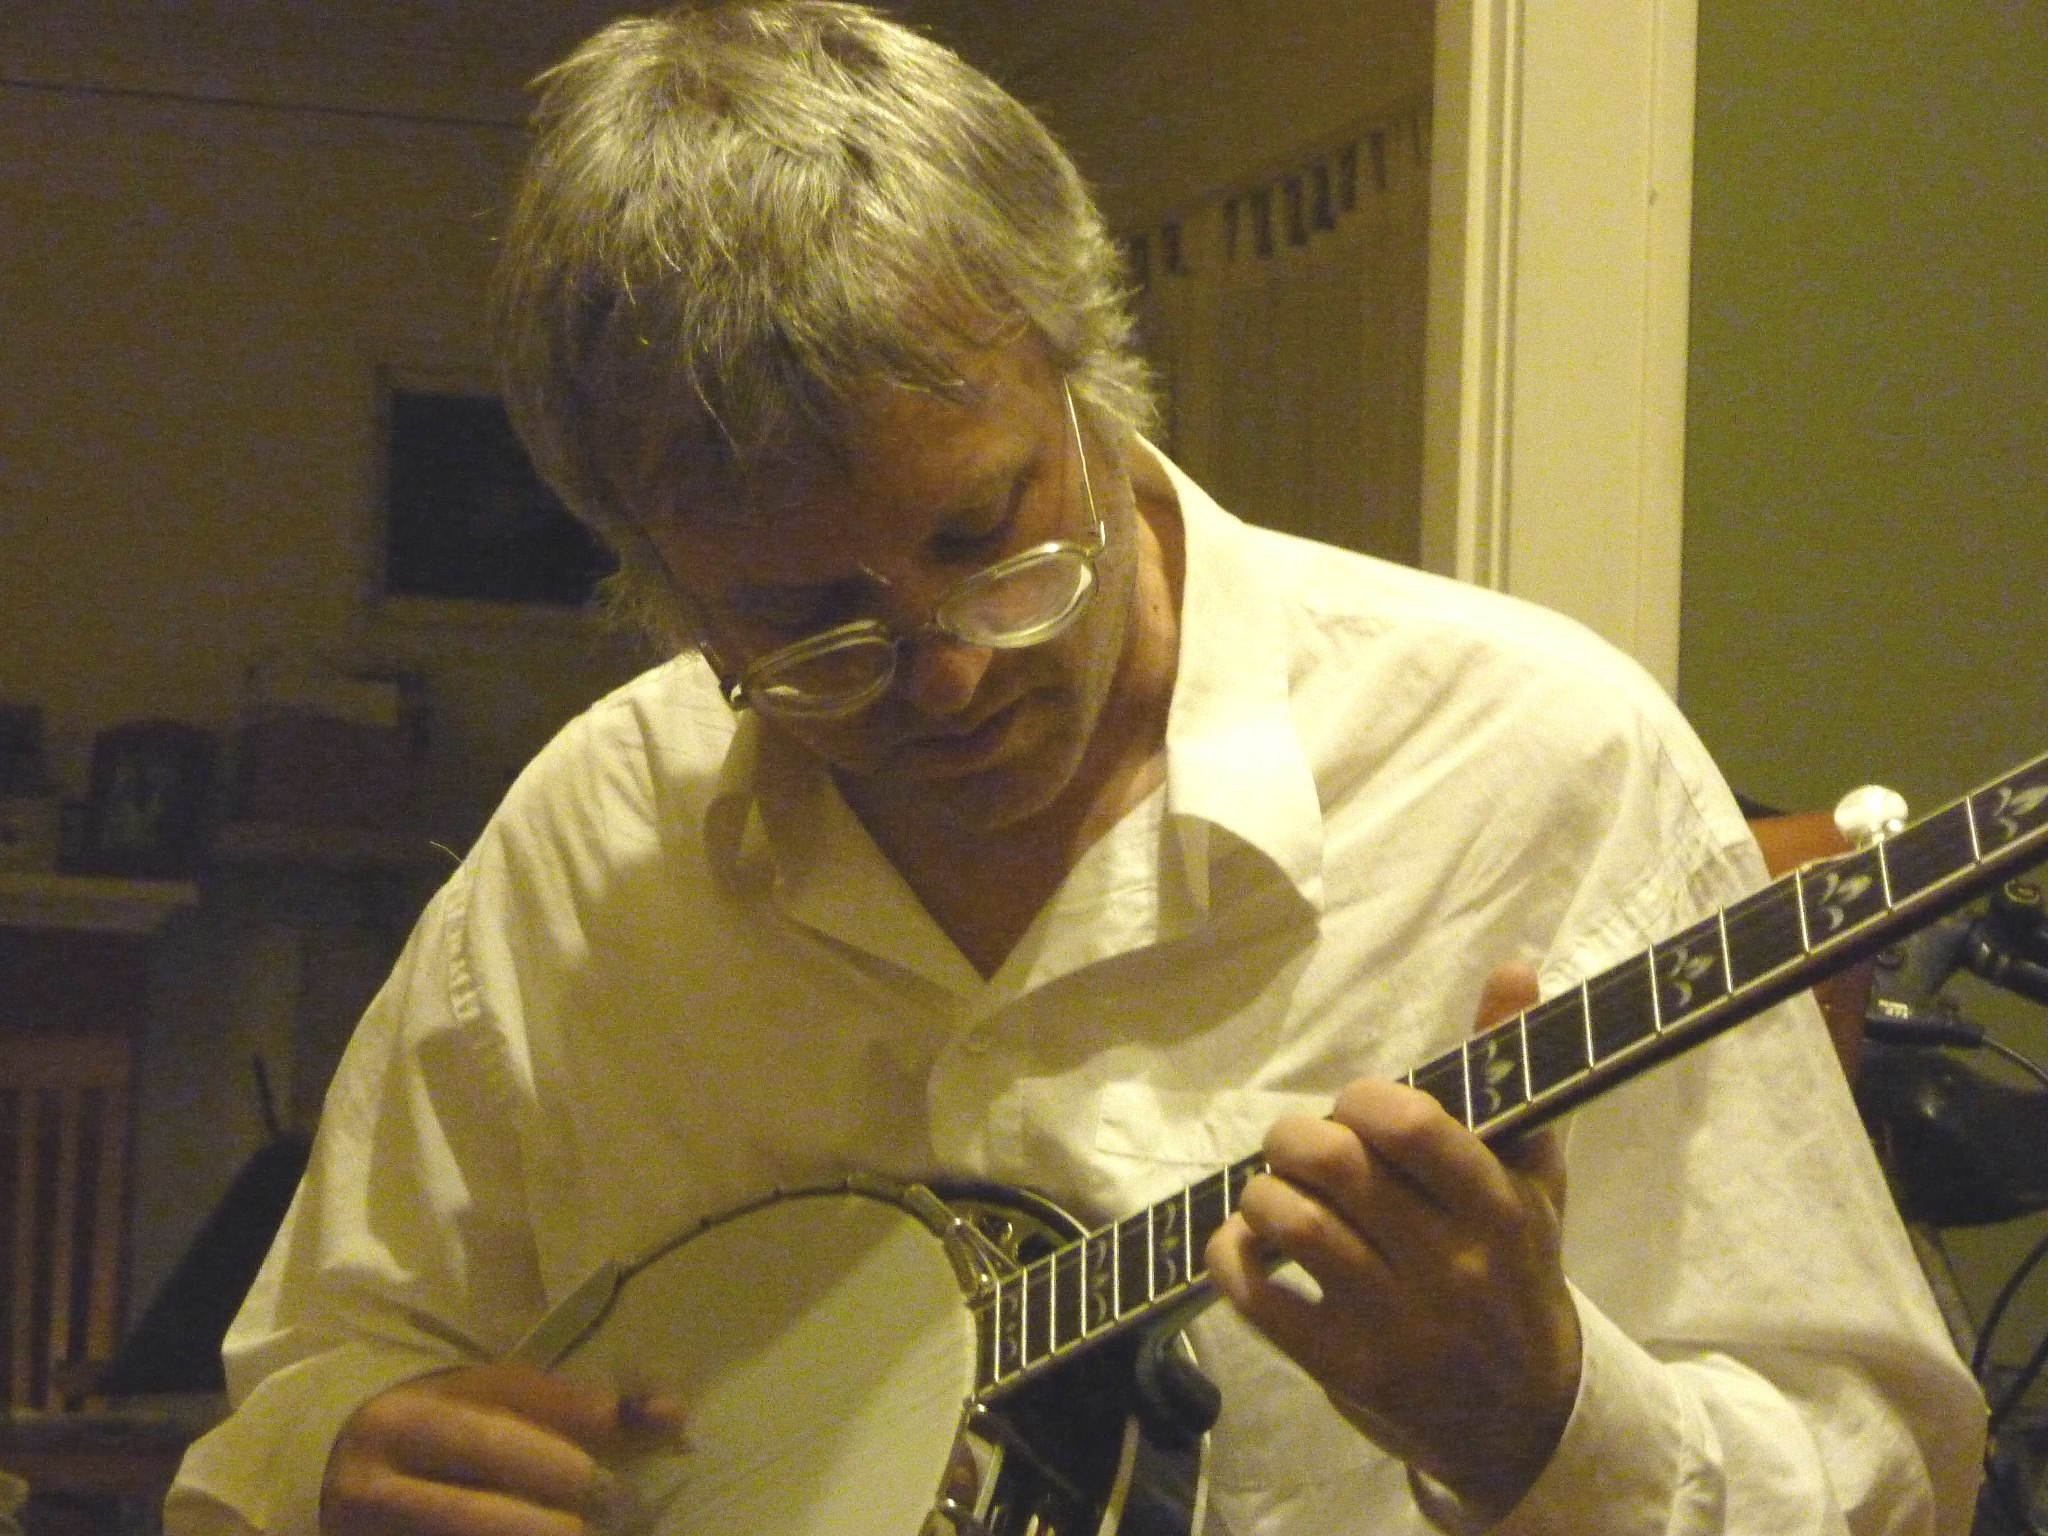 Peter Schwimmer: Bands, Singers, Songwriters / Composers, Solo Performers, Sidemen, Instrumentalists, Performers, Entertainers, Musicians, Cowboy Poets